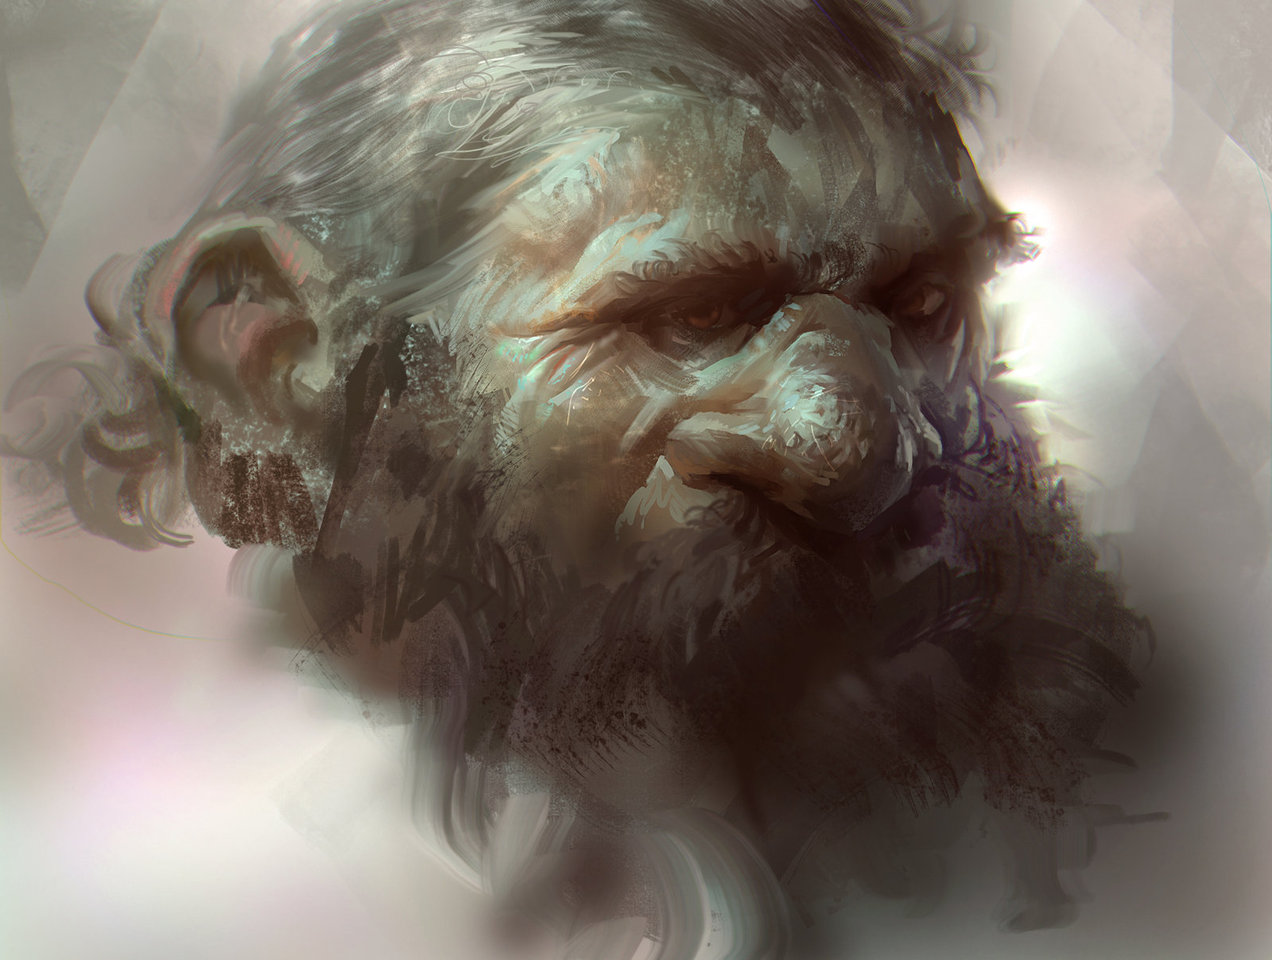 dwarf head by mike.azevedo